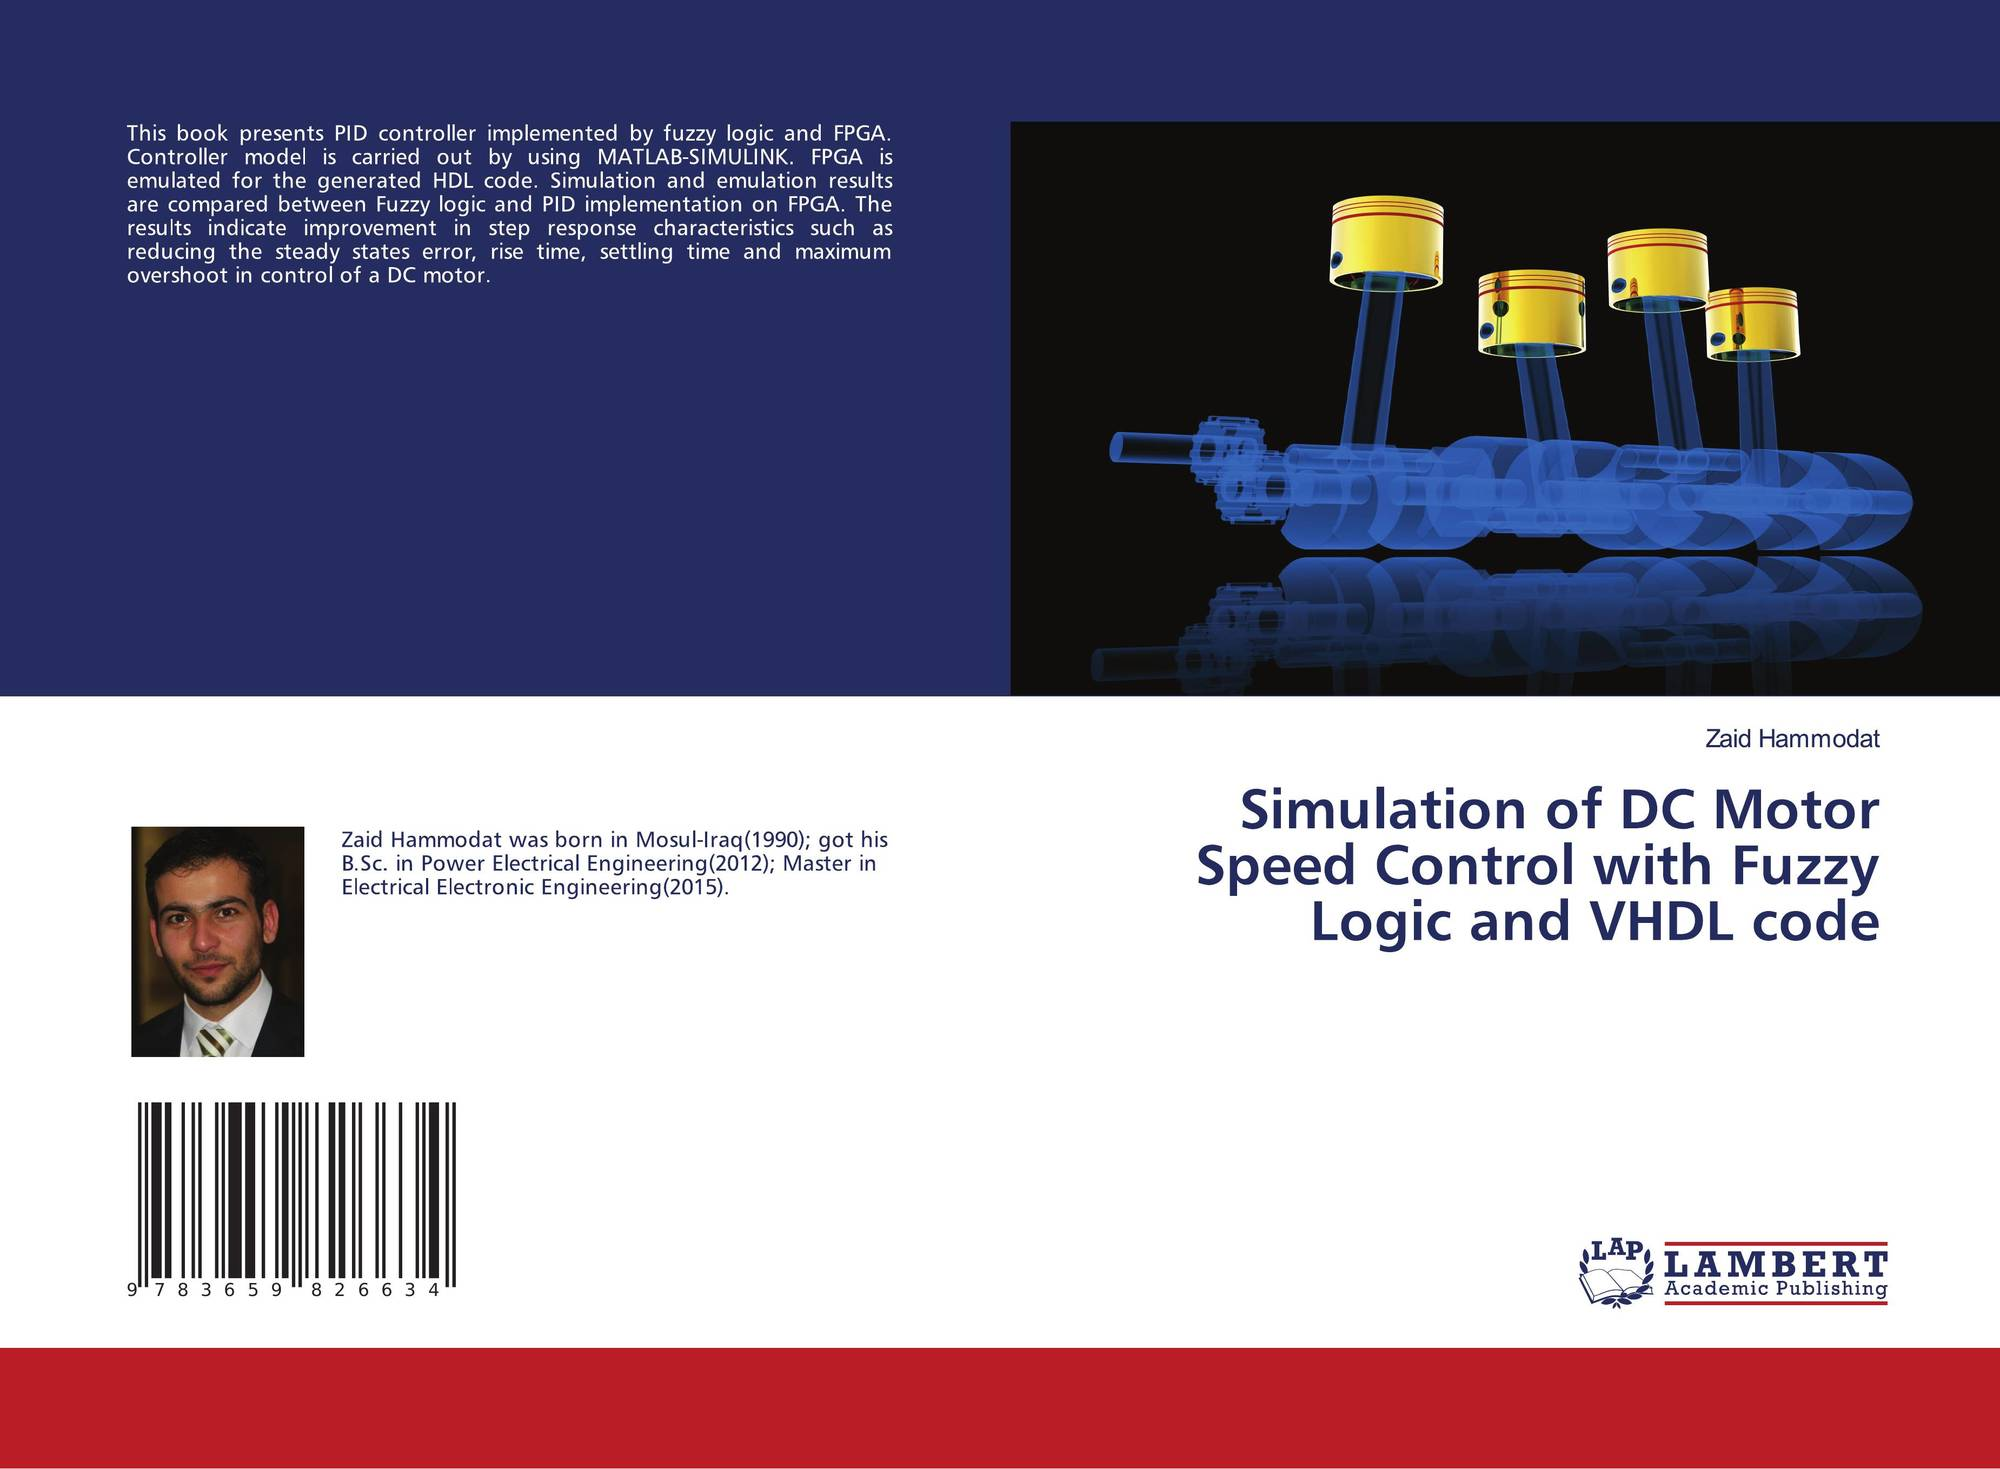 P Id Logic Diagram Simulation Of Dc Motor Speed Control With Fuzzy And Vhdl Code 9783659826634